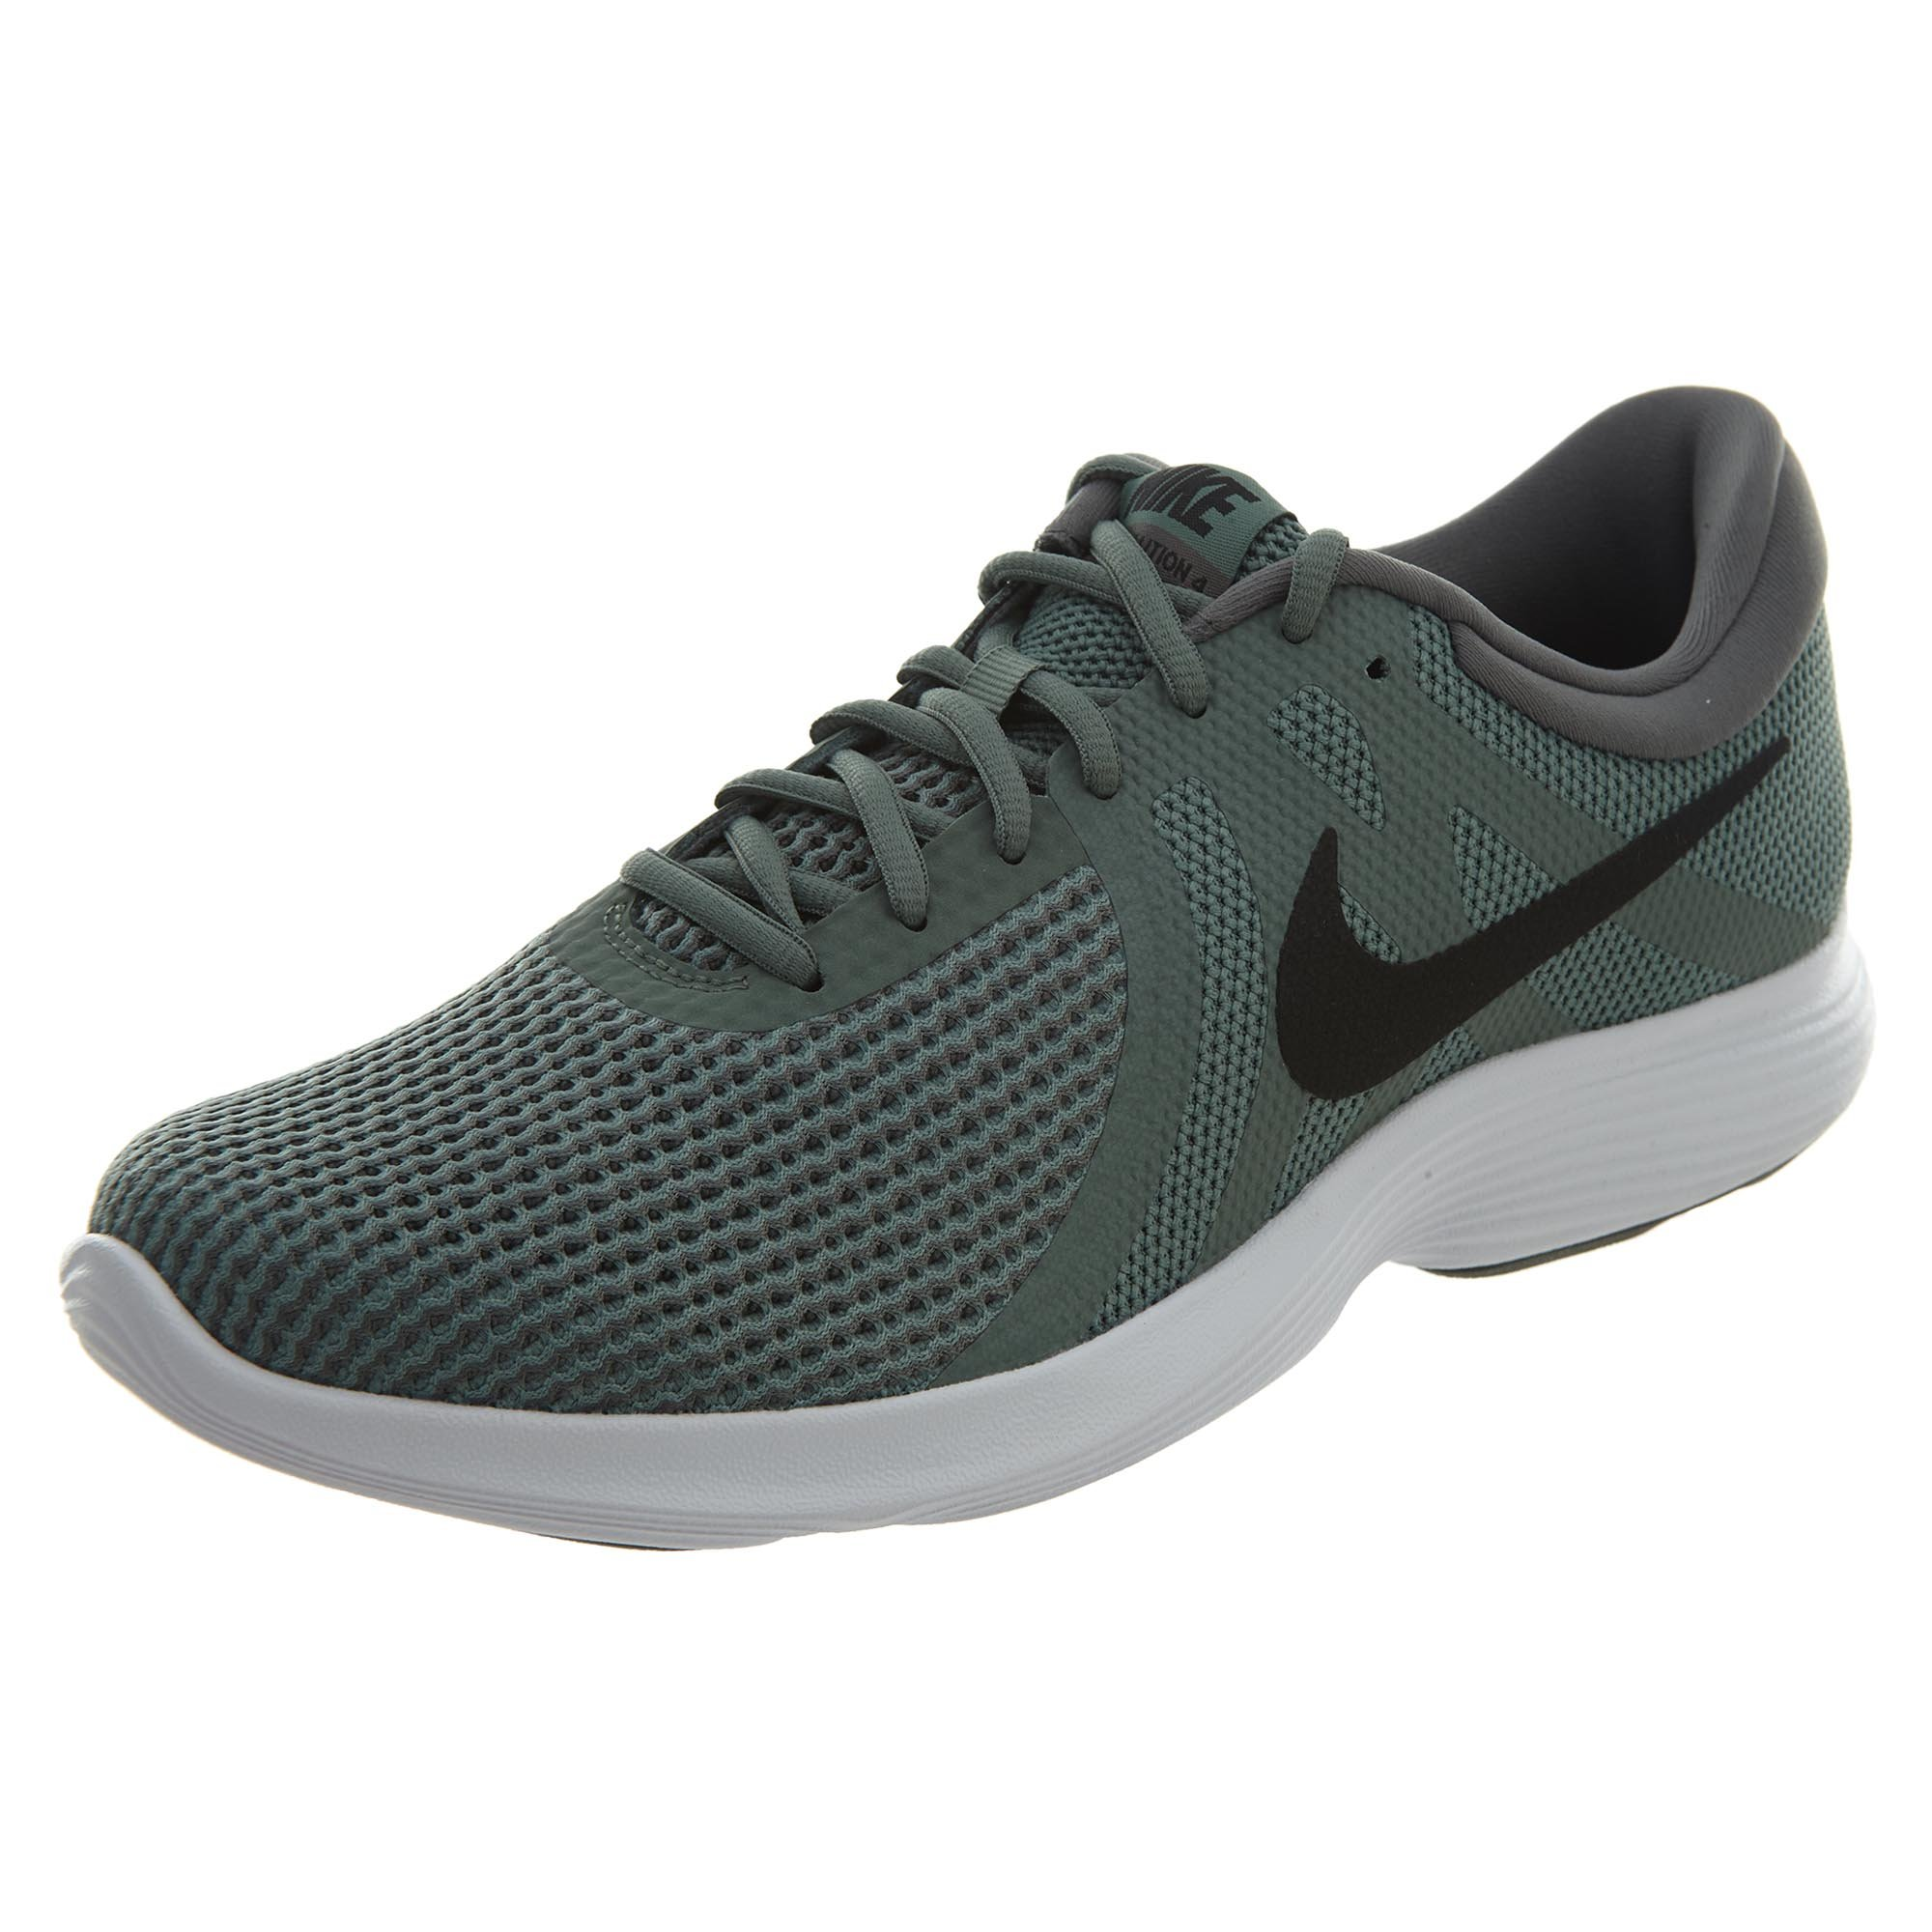 NIKE Revolution 4 Mens Style : 908988-300 Size : 9.5 M US by NIKE